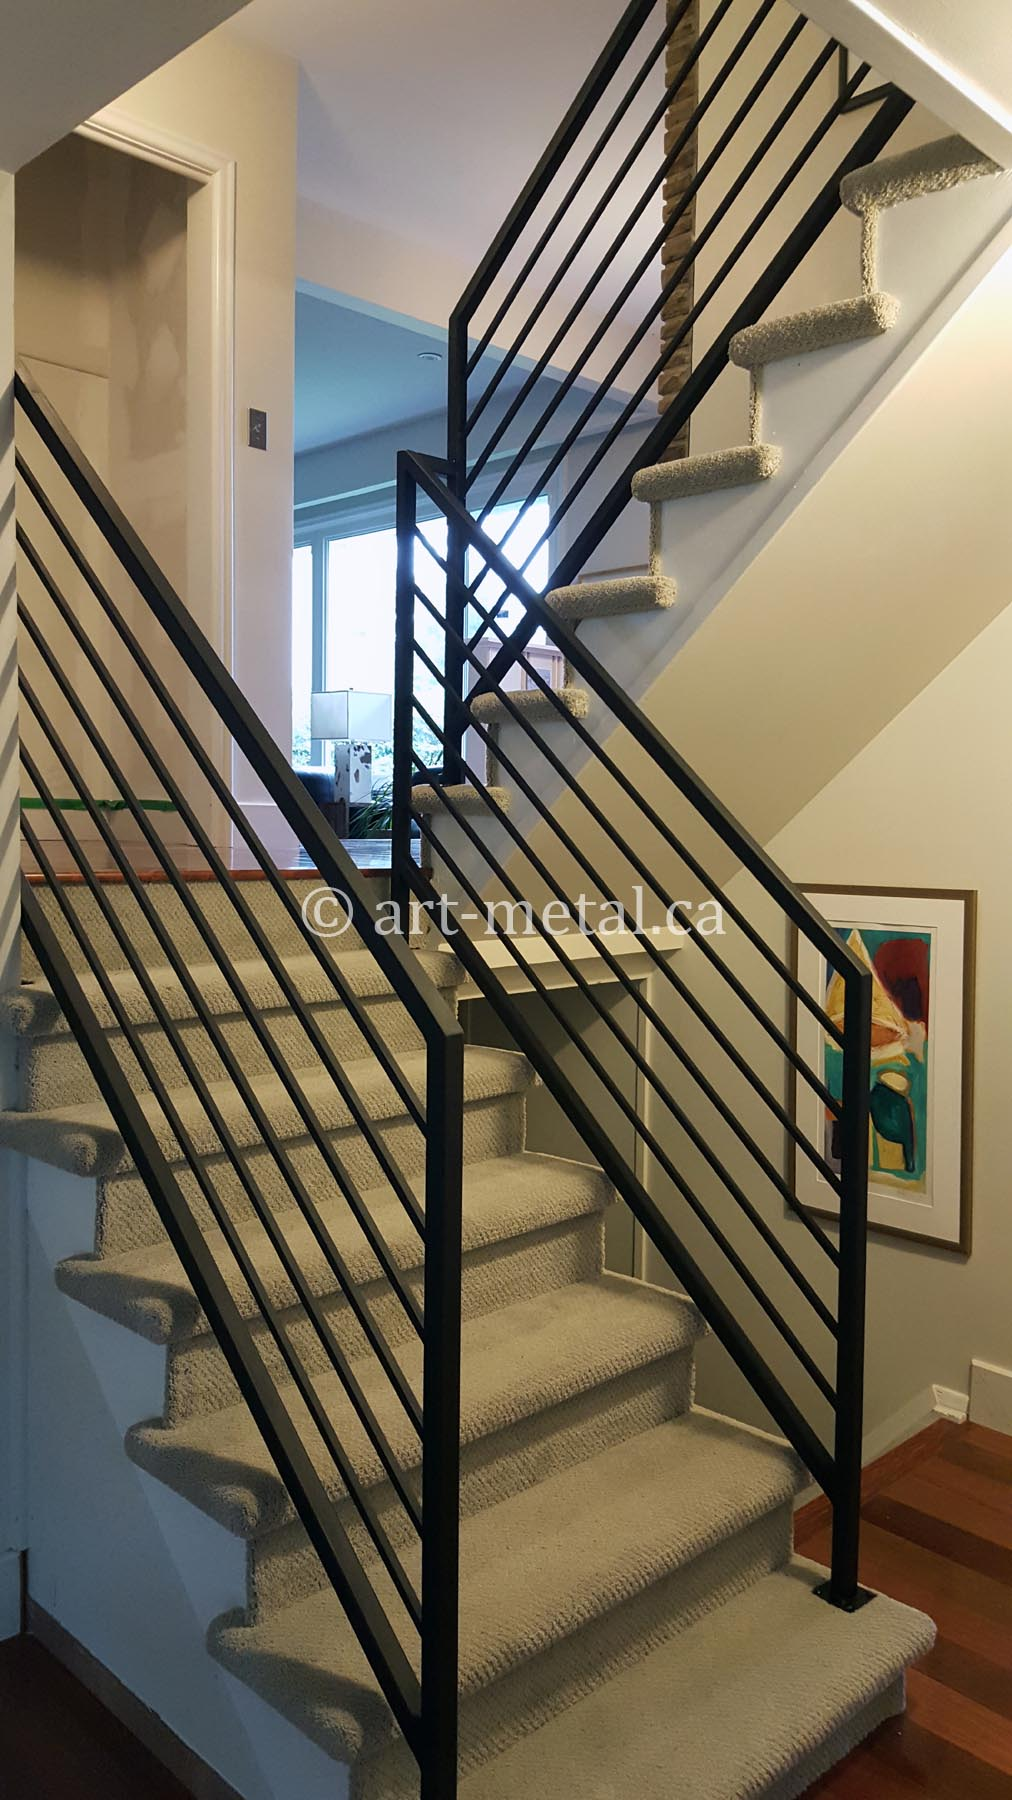 Treppen Innenraum Elegant And Modern Interior Wrought Iron Railings For Stairs